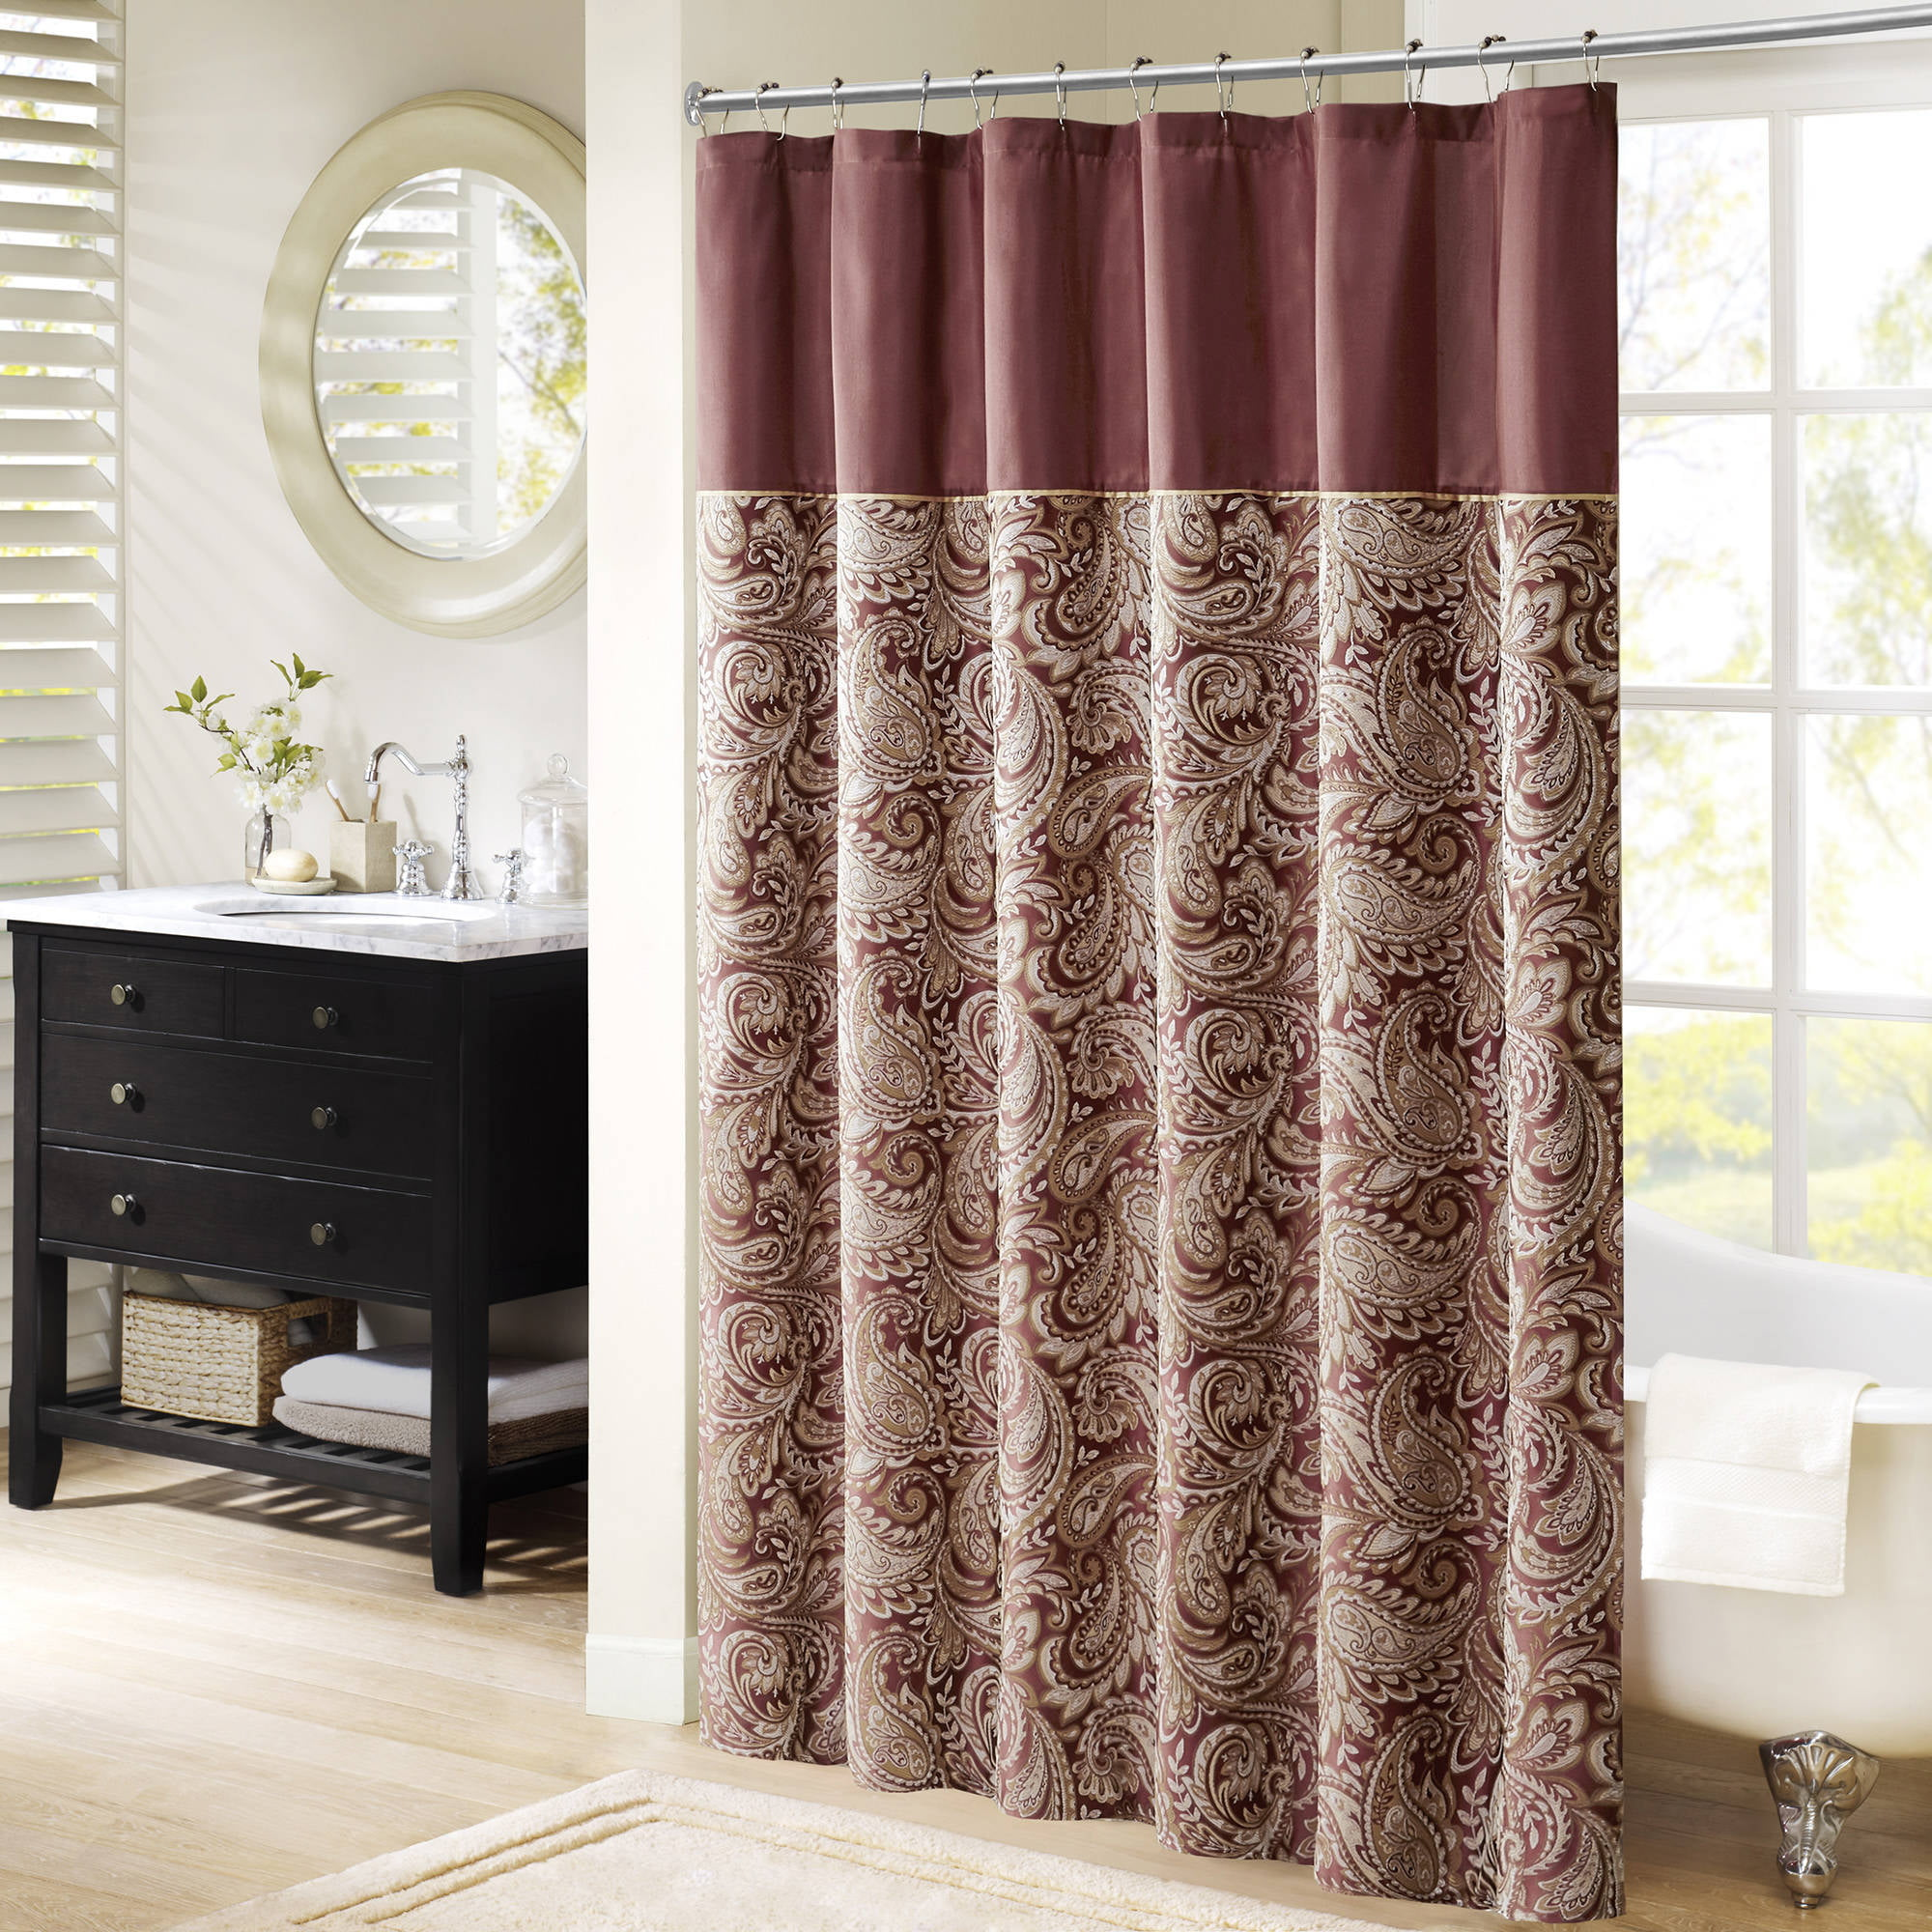 Shower Curtains   Walmart.com